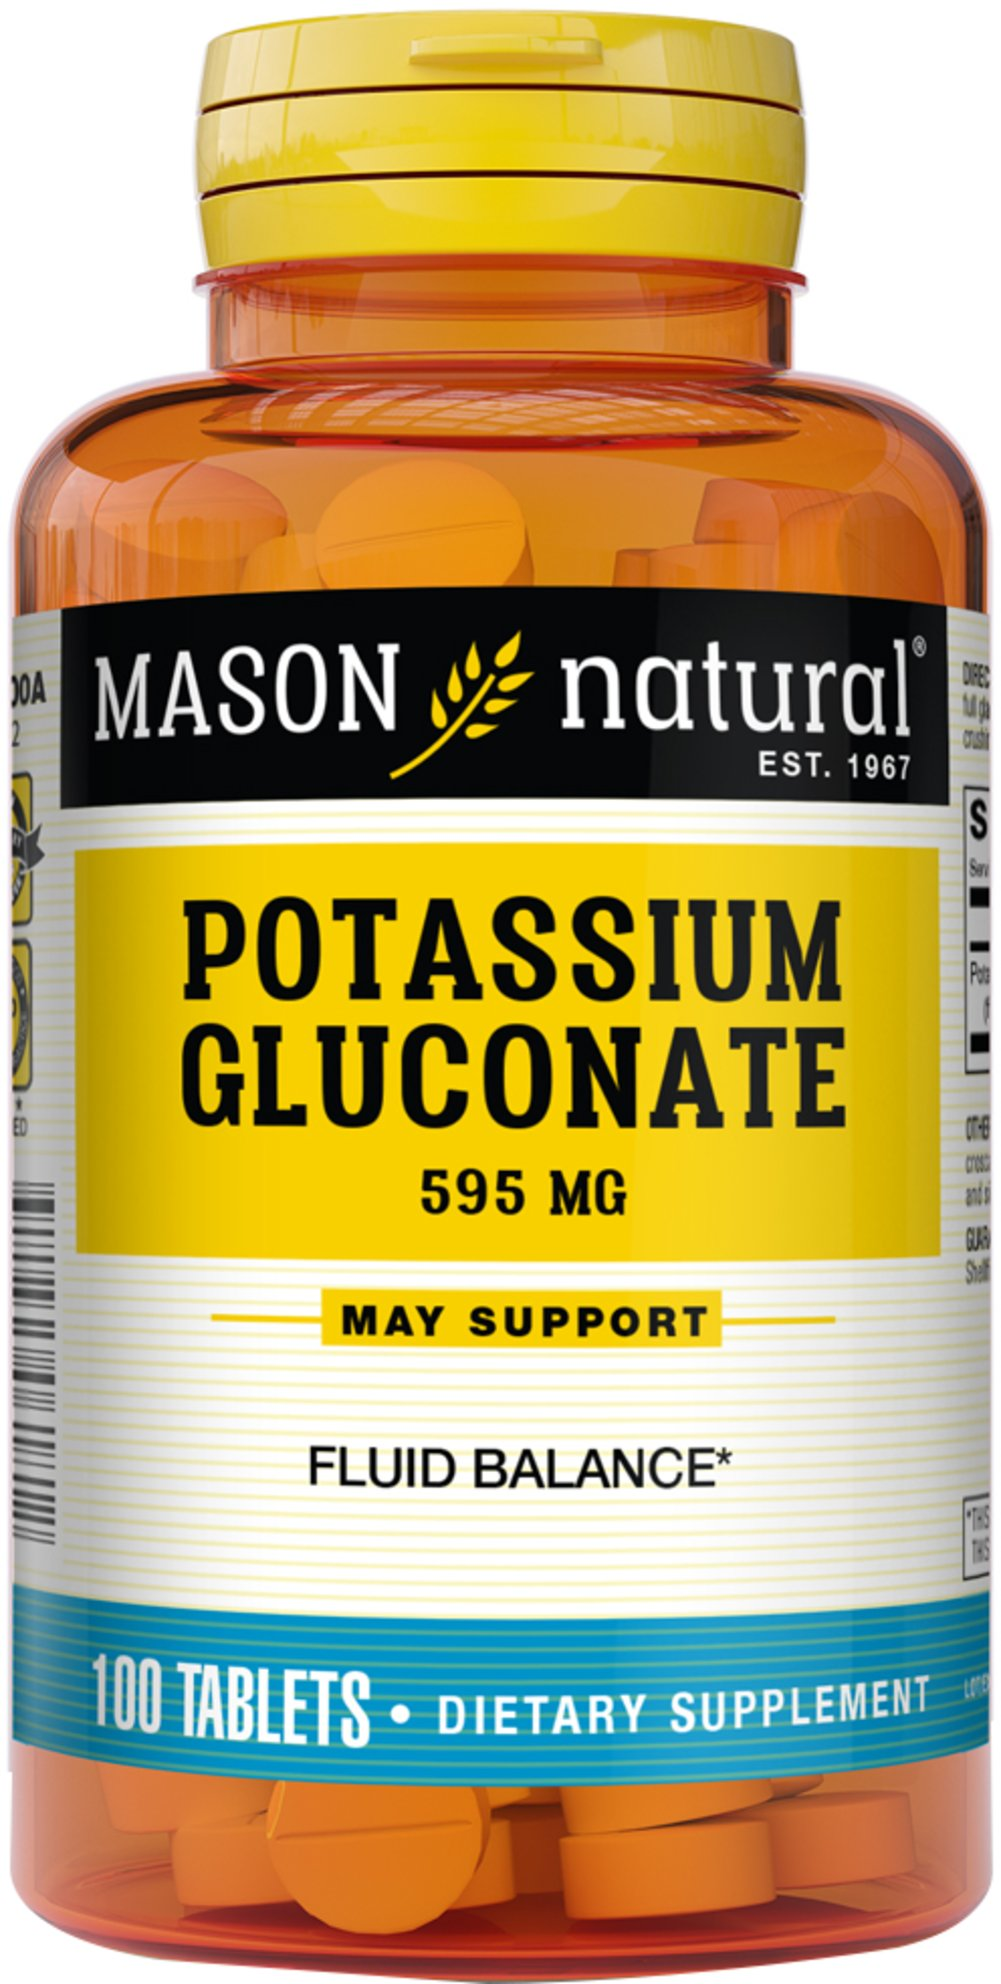 Potassium Gluconate 595 mg  100 Tablets 595 mg $5.99